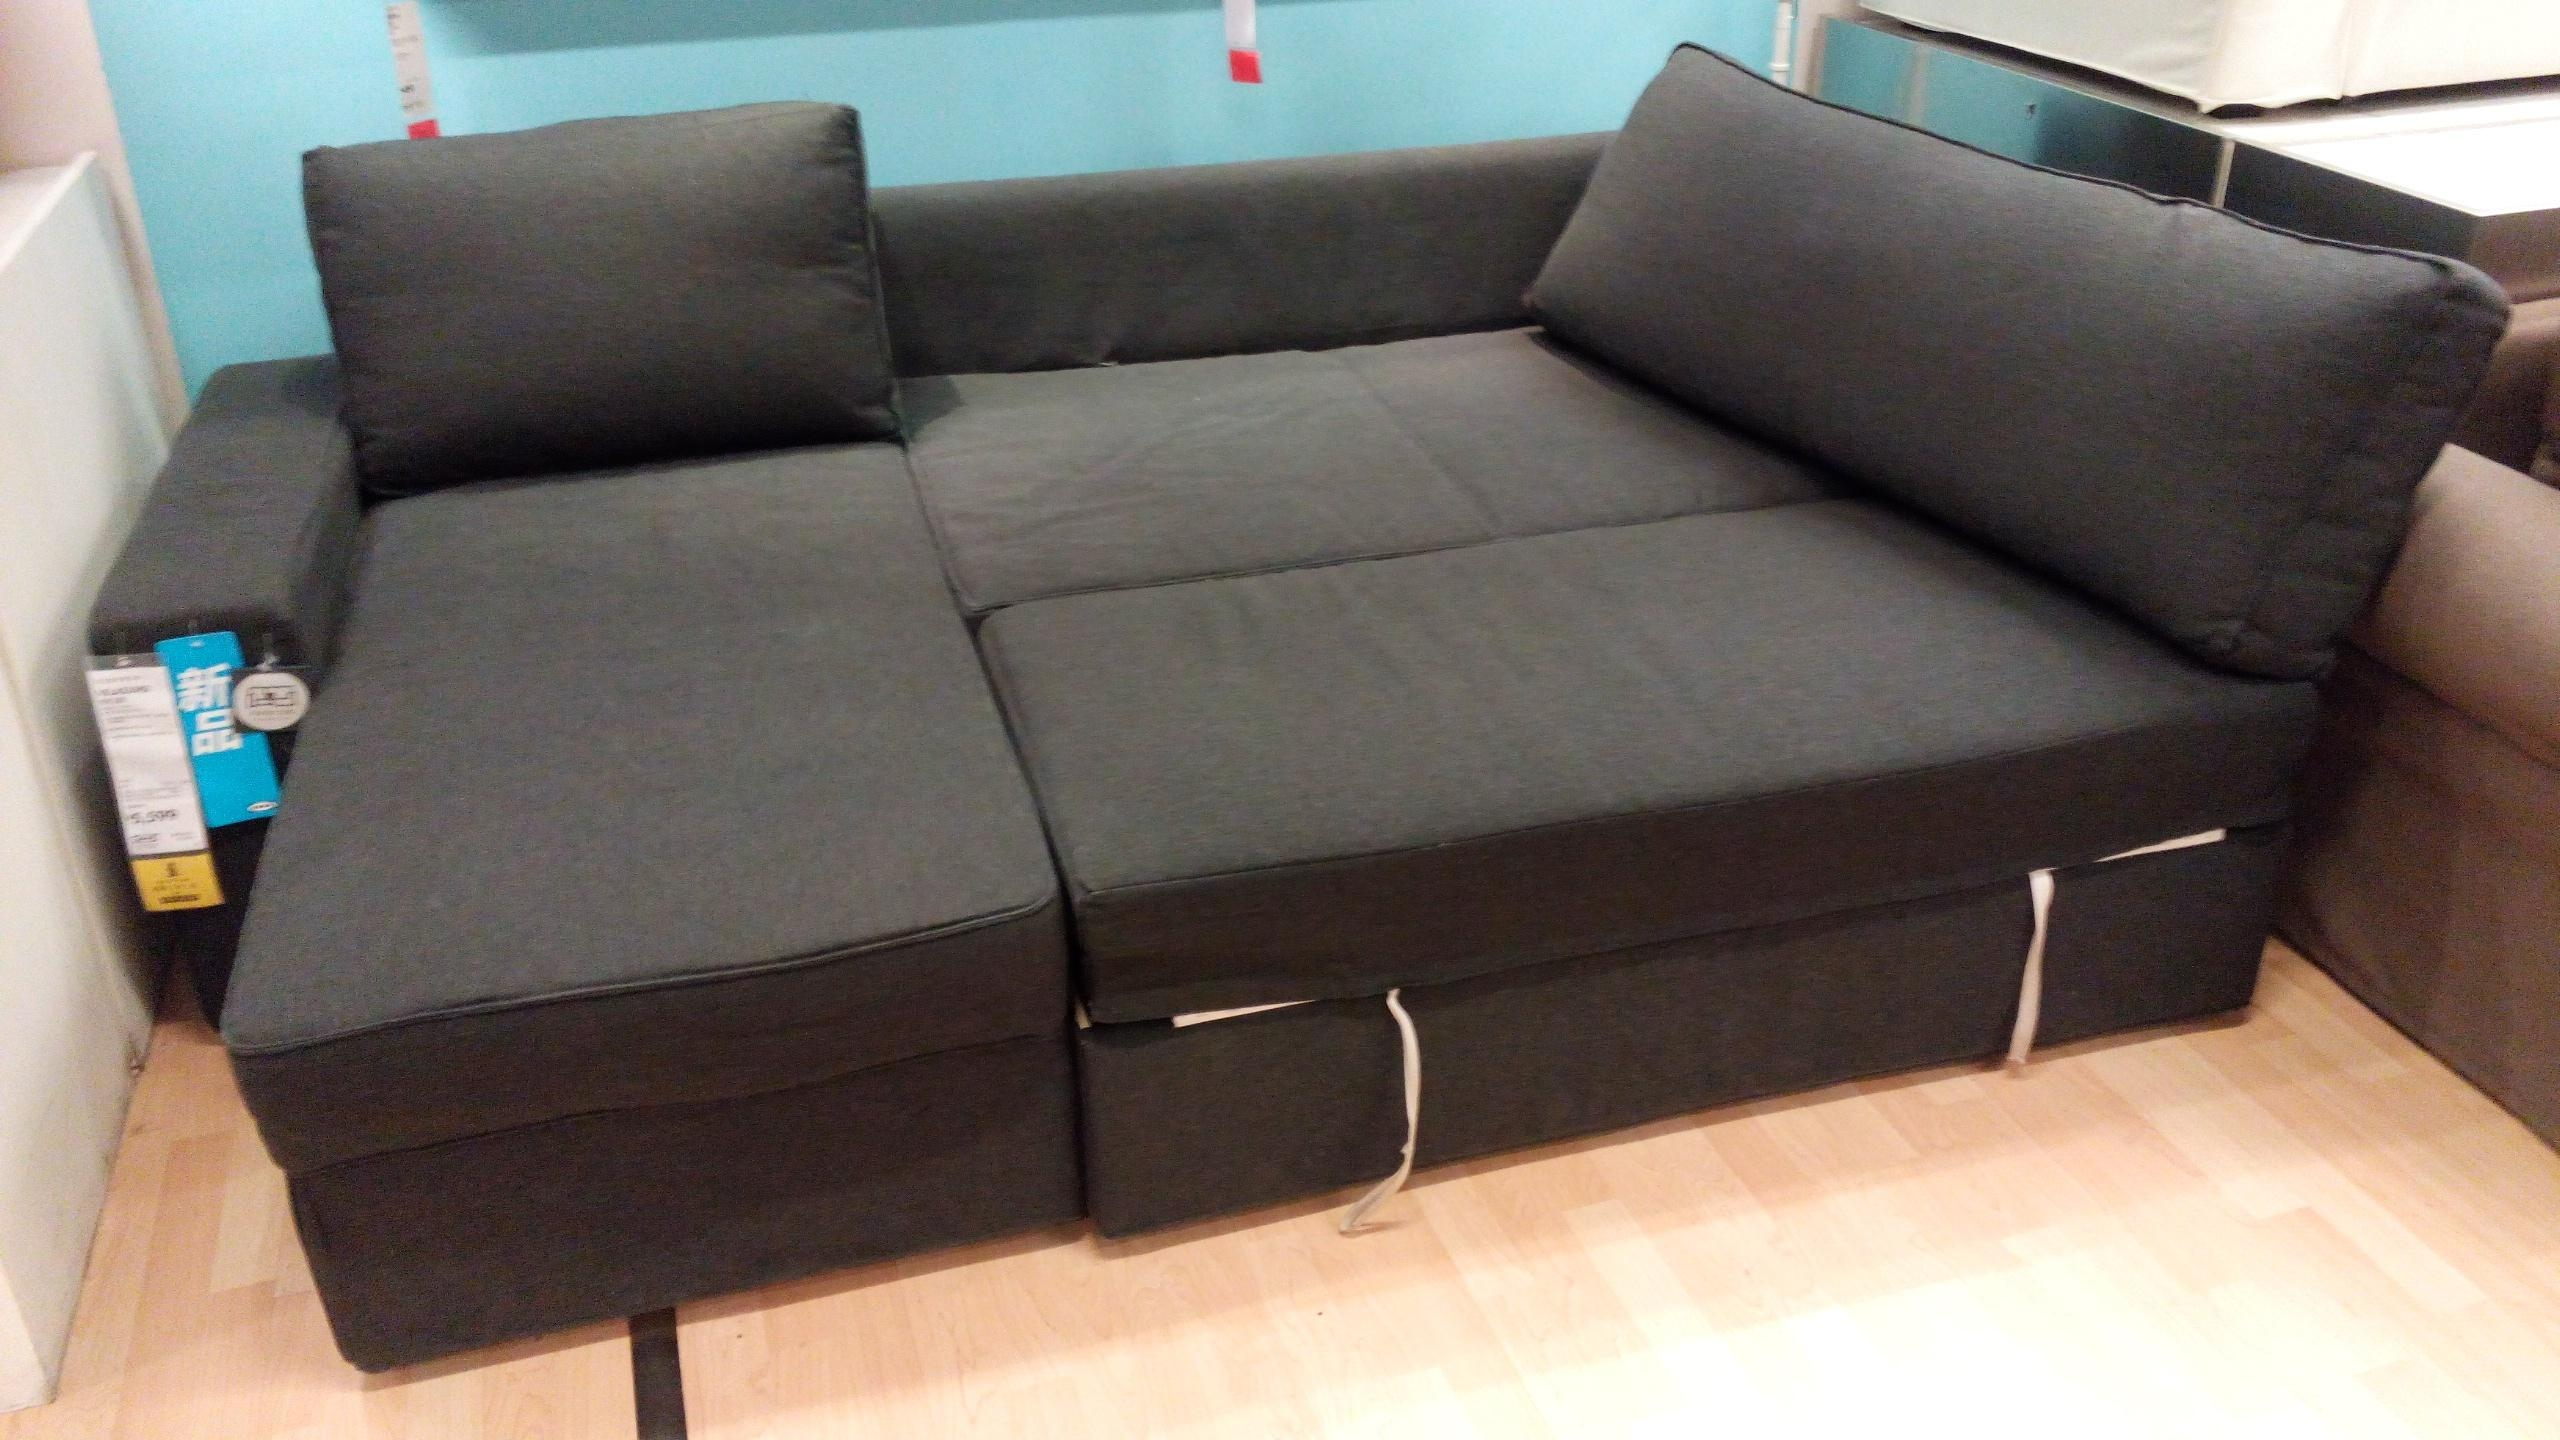 Sofas Center : Rv Sofa Mattress Pad Covers With Storage Jackknife Inside Sleeper Sofas Mattress Covers (Image 16 of 20)